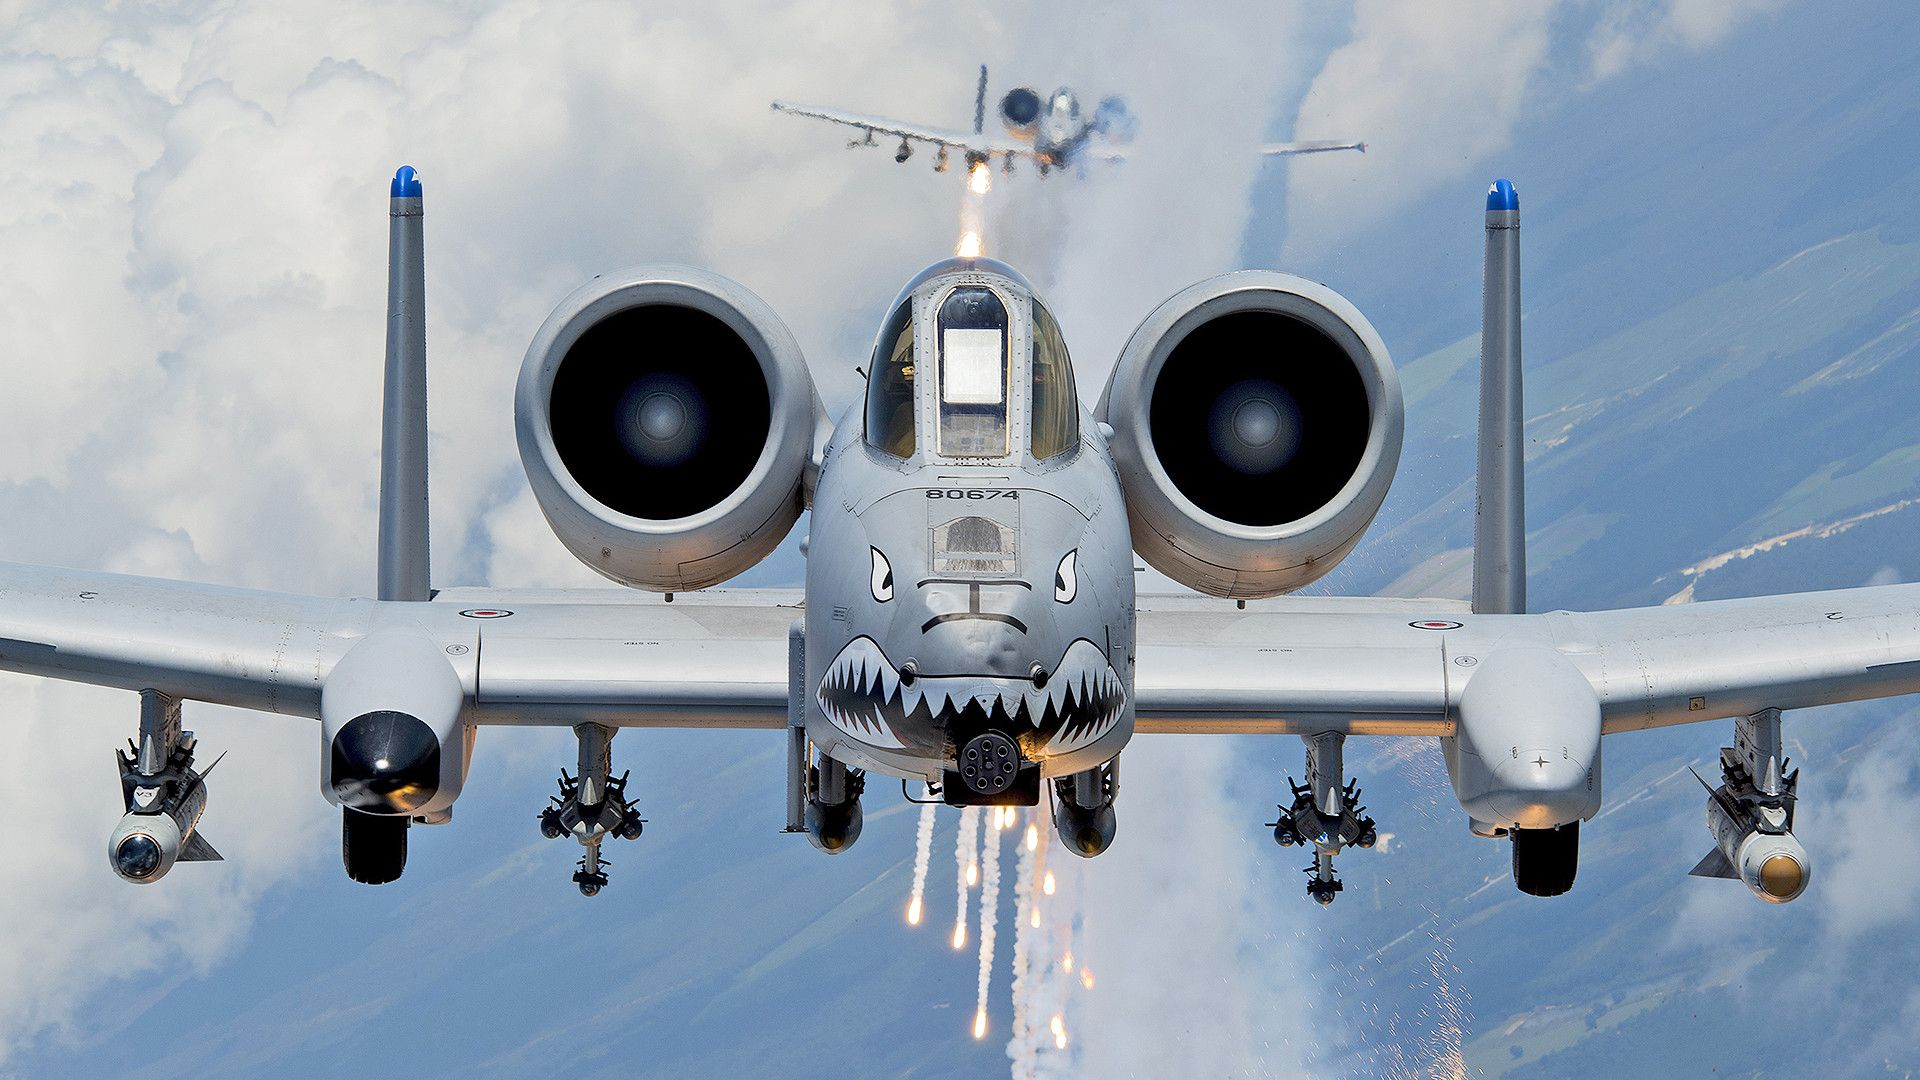 A 10 Warthog Wallpaper Hd 1920x1080 High Resolution Fighter Jets Warthog Military Aircraft